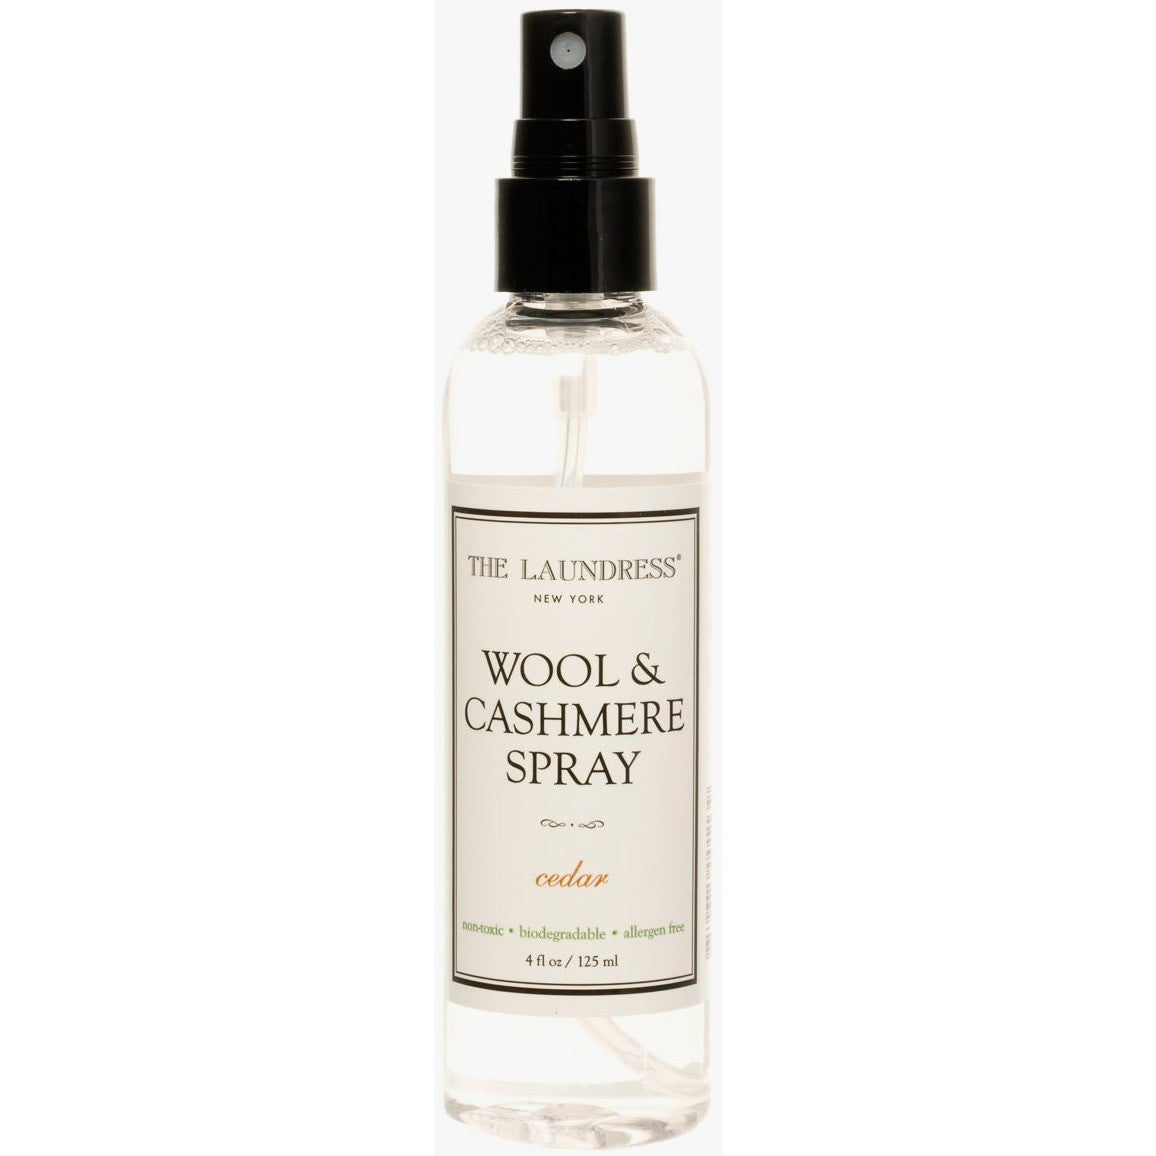 the laundress - wool & cashmere spray[product_type ]the laundress - Kiss and Makeup